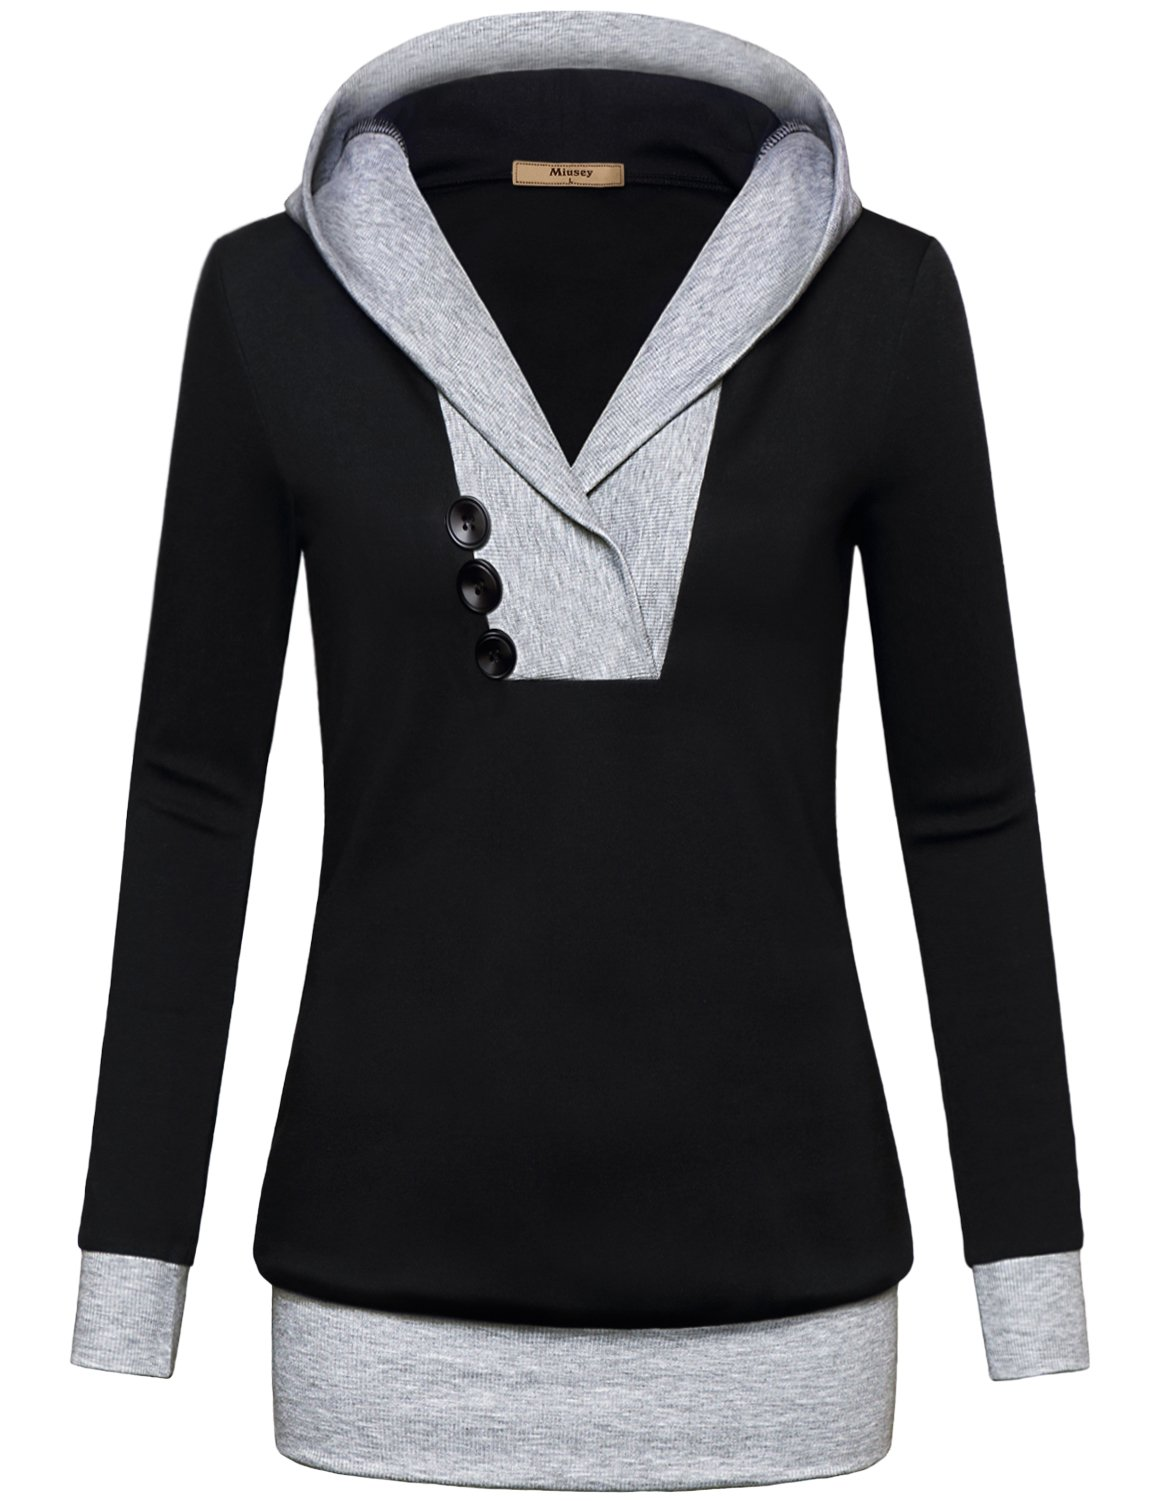 Miusey Tunic Hoodie, Women Long Sleeve Pullover Hit Color Kangaroo Pocket Top Hoodie Sweater T-Shirt Small Black